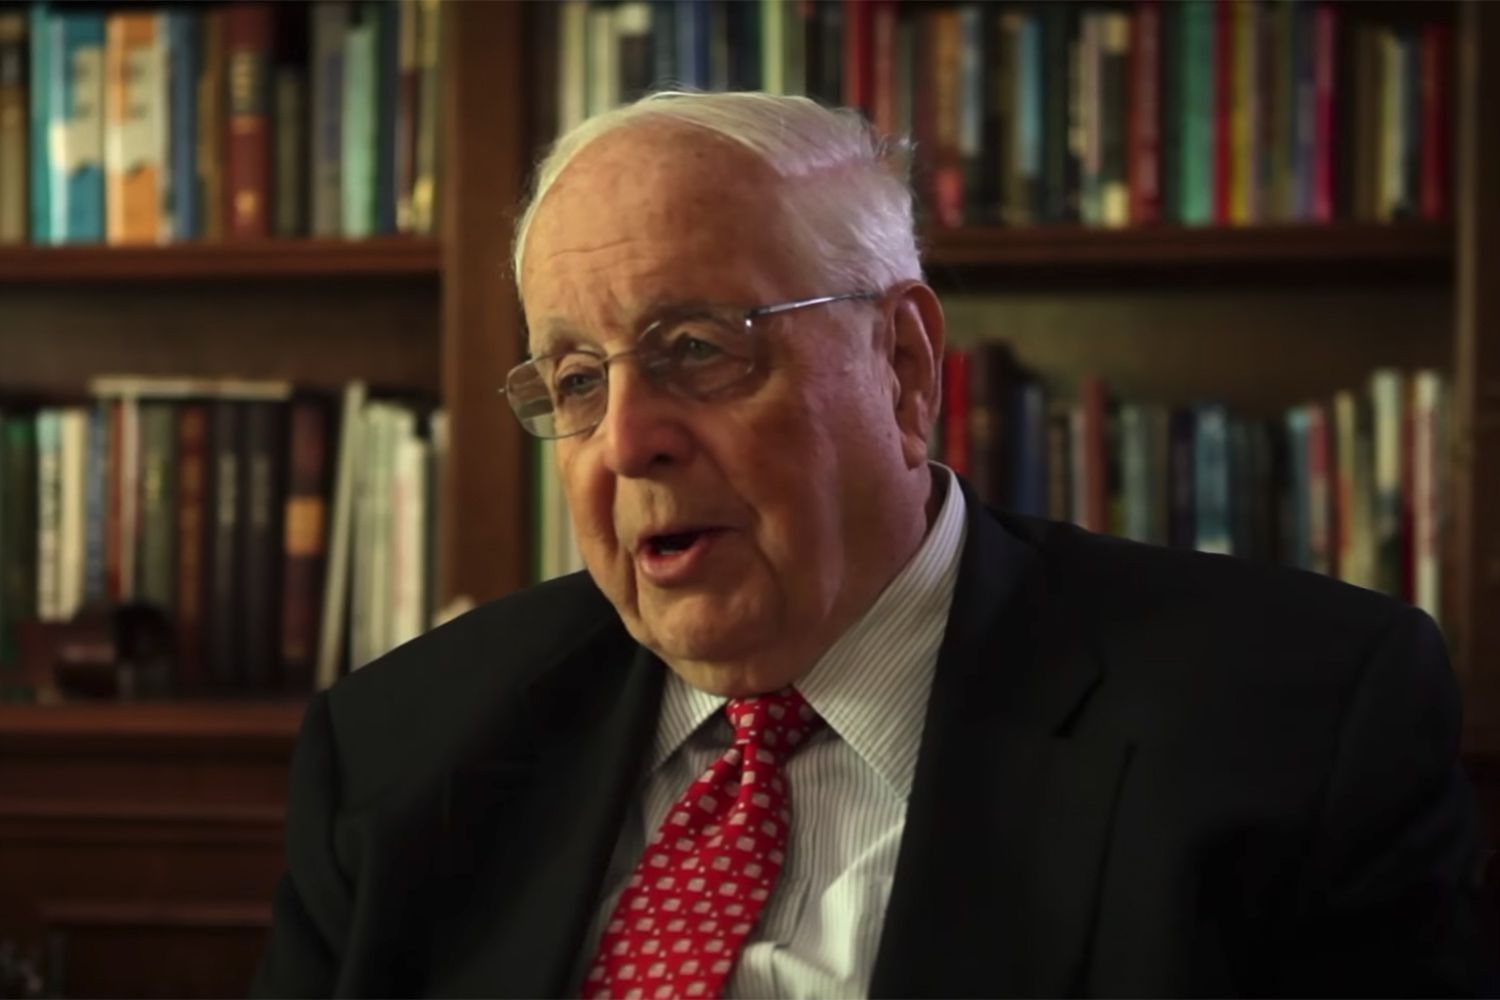 Paul Pressler, retiredjustice of the Texas 14th Circuit Court of Appeals.